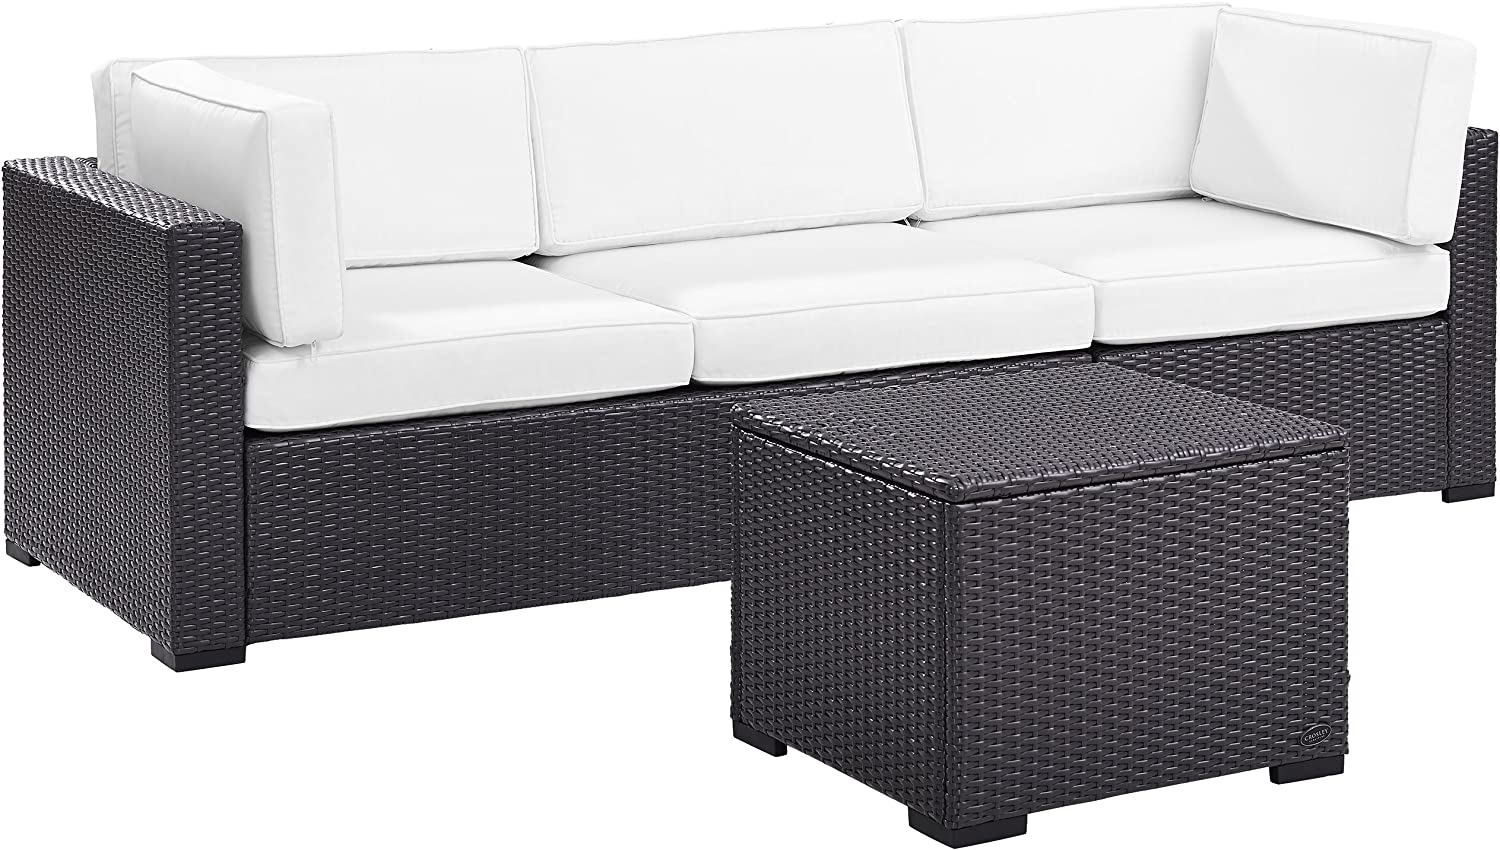 Crosley Furniture KO70111BR-WH Biscayne 3-Piece Outdoor Wicker Seating Set, Brown with White Cushions